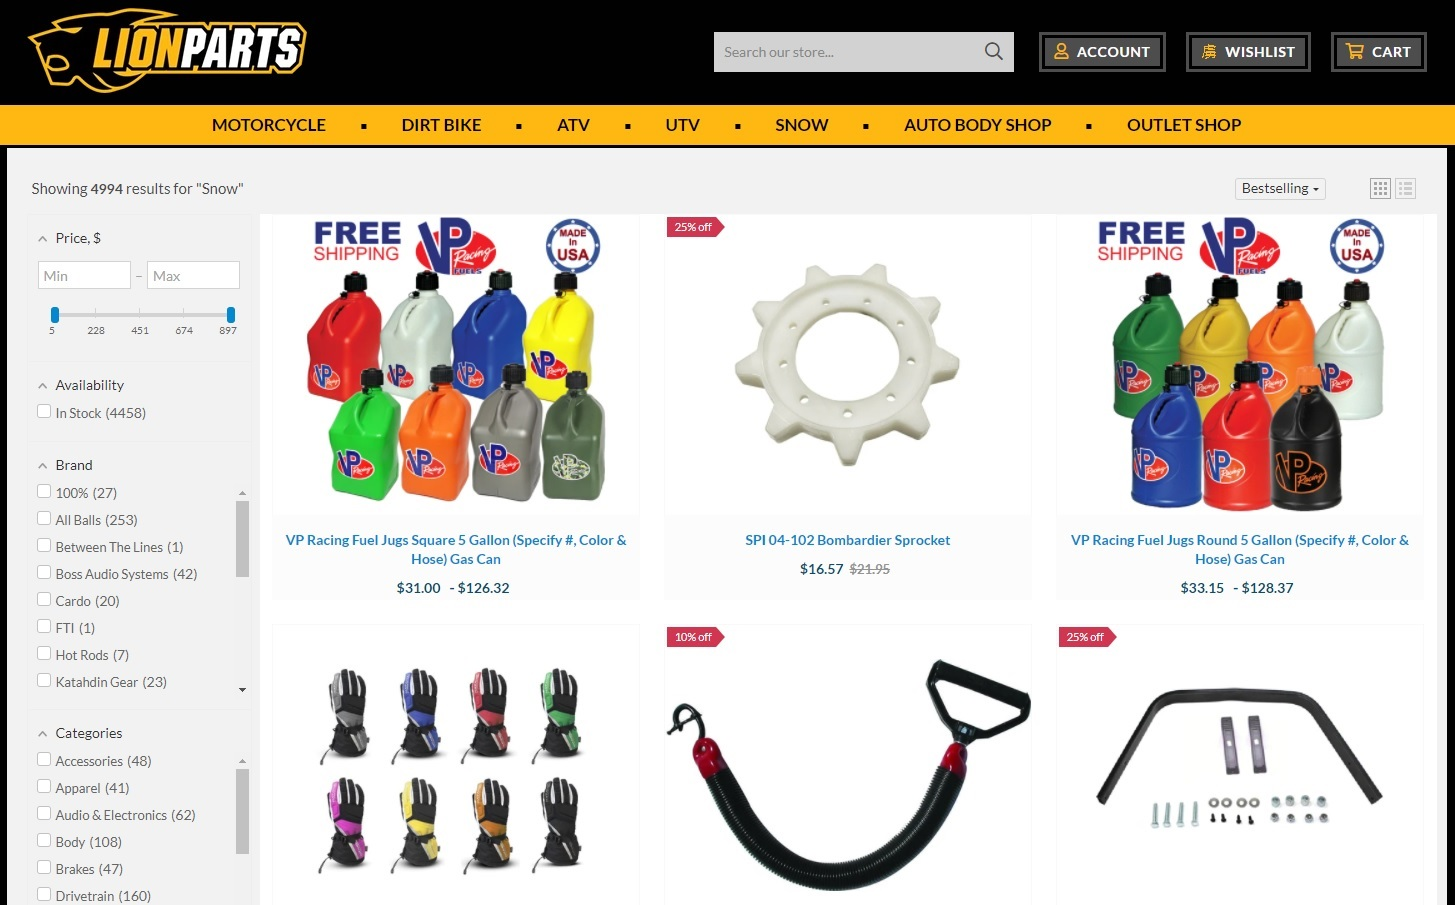 Snowmobile parts and accessories with free shipping in the US.